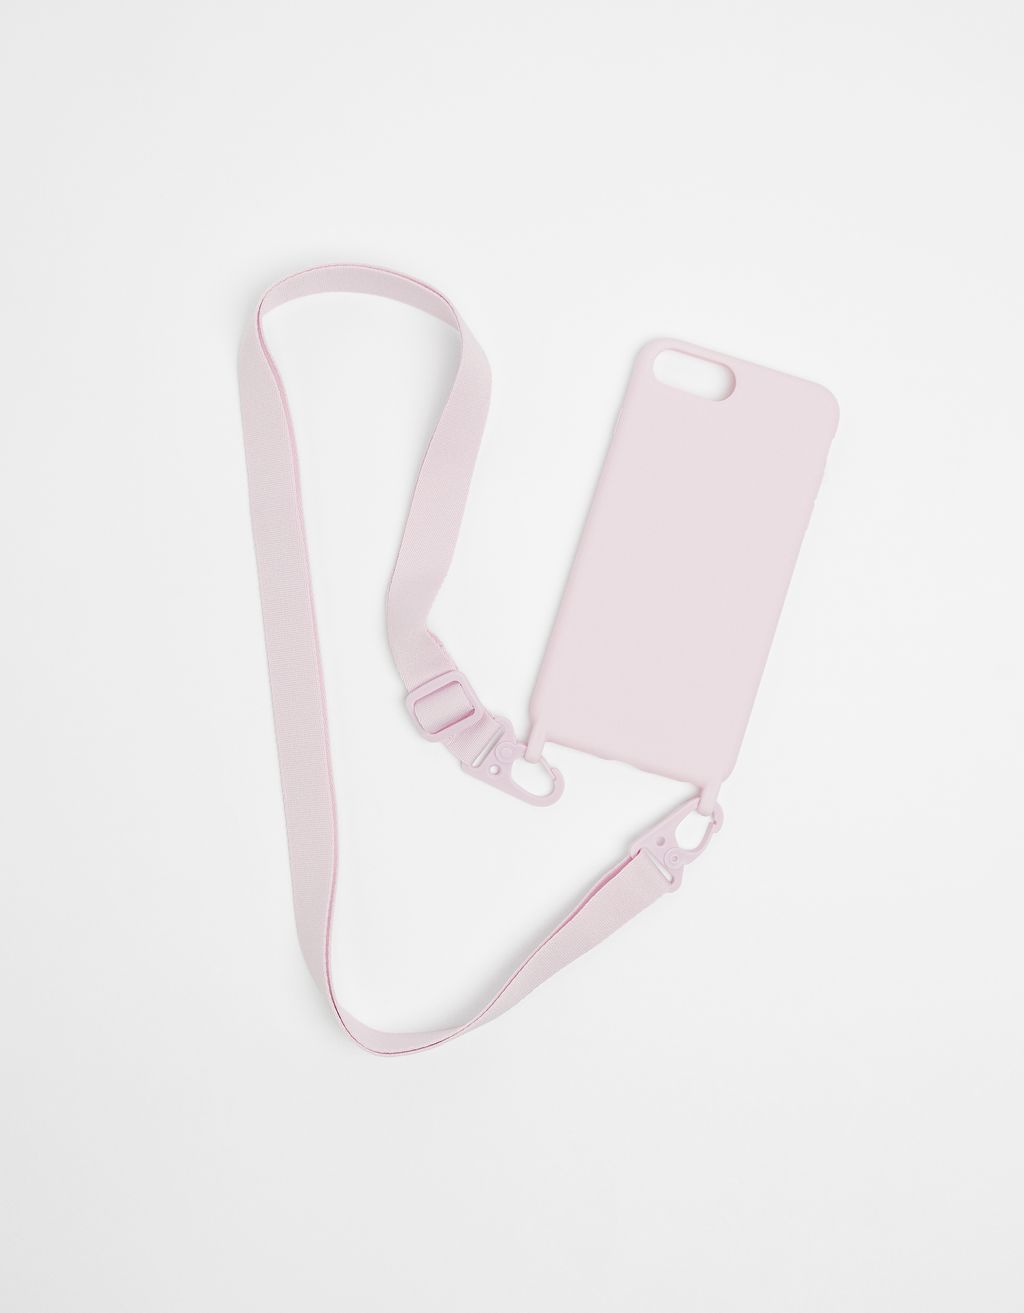 iPhone 6 Plus / 7 Plus / 8 Plus case with strap